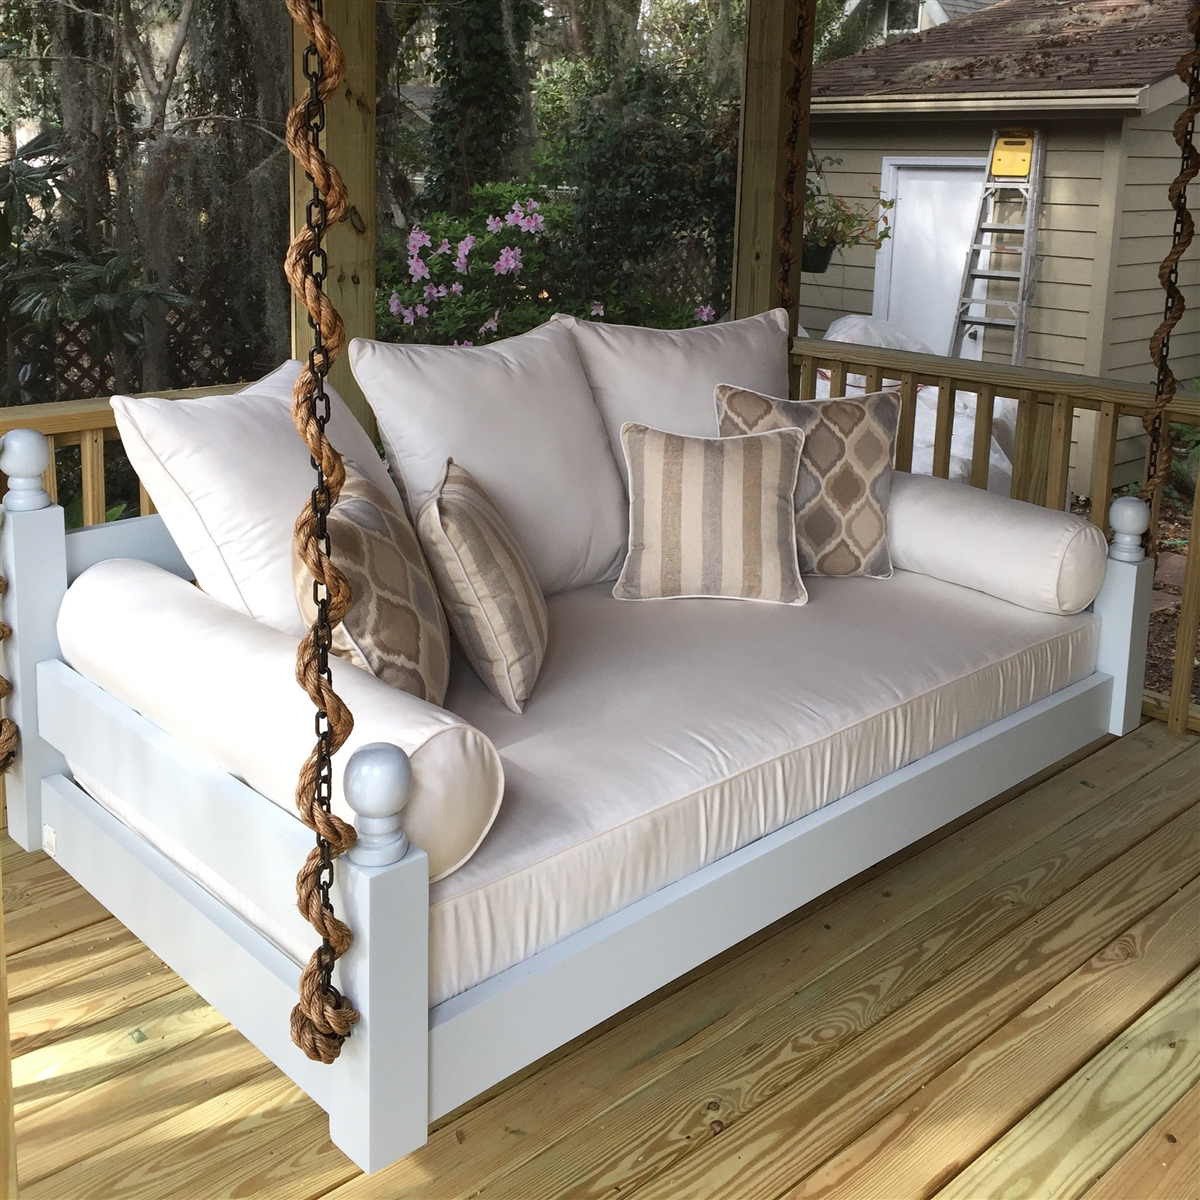 89 First Rate Crib Bed Swing Ideas Oneshellsquare